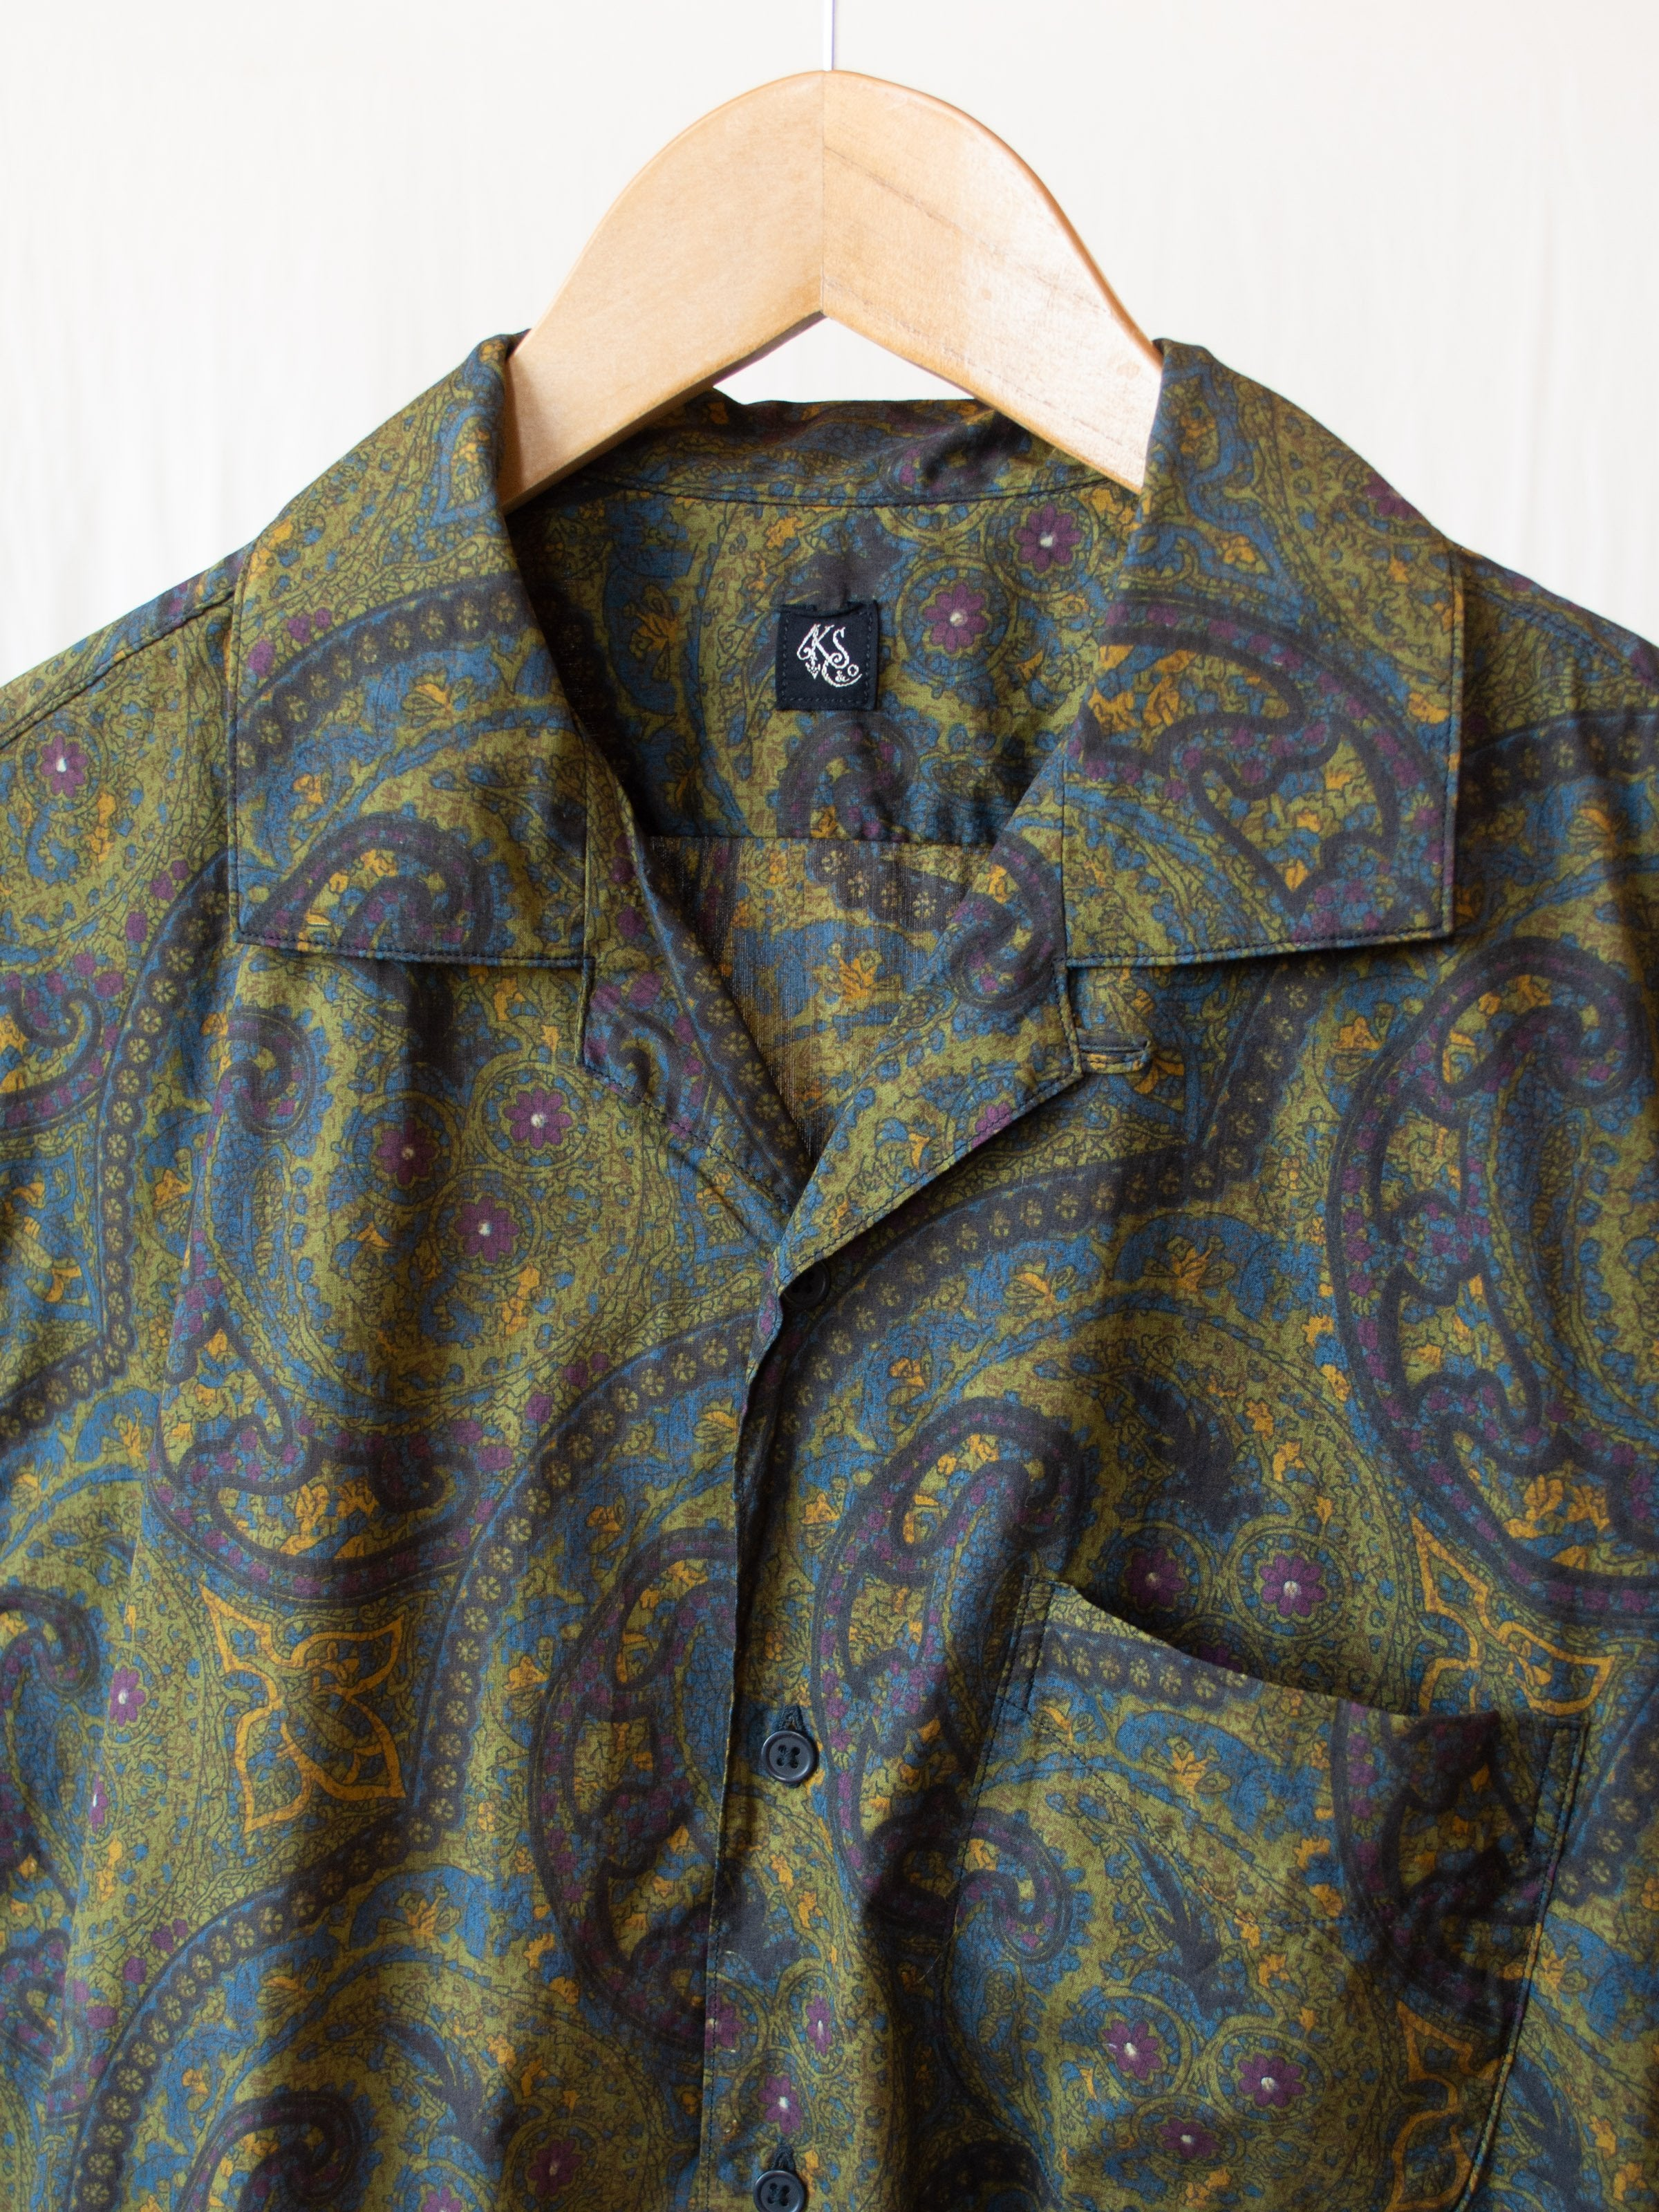 Namu Shop - Kaptain Sunshine Open Collar S/S Shirt - Hand Printed Dark Paisley